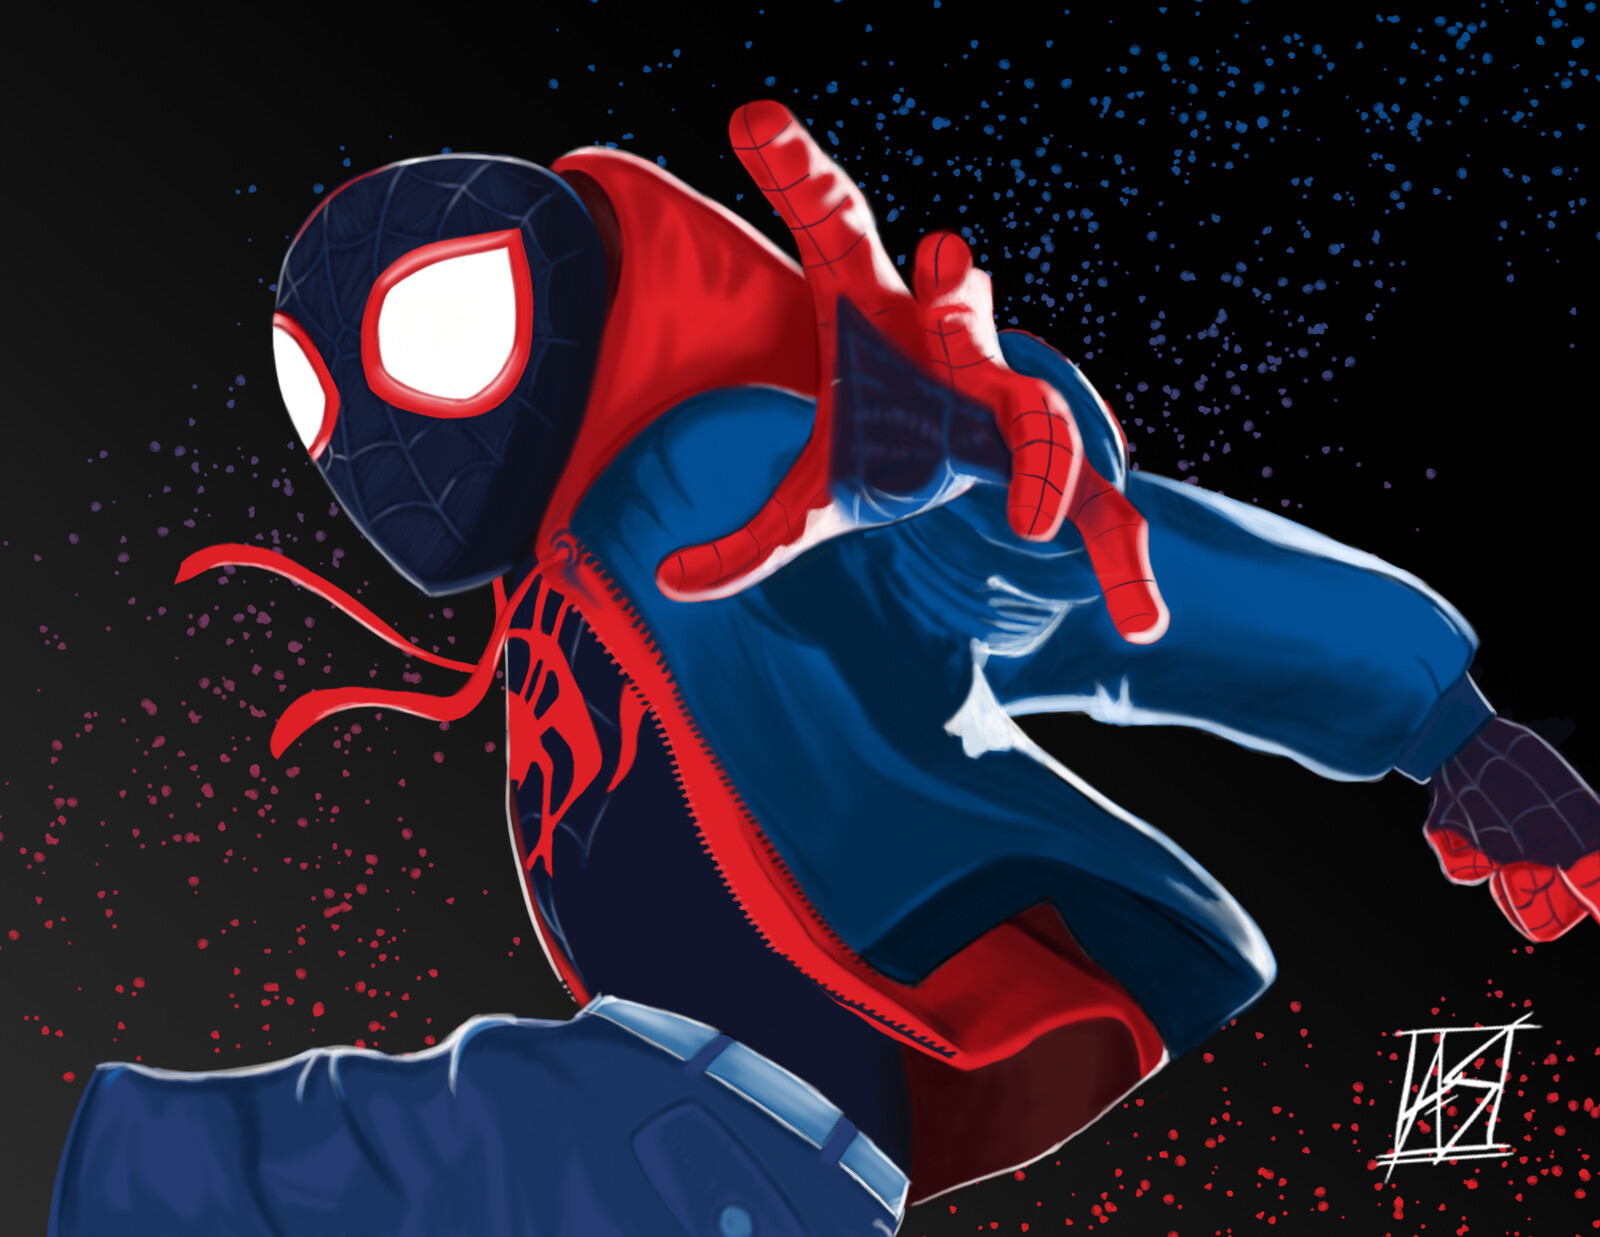 Spiderman - Into The Spider-Verse